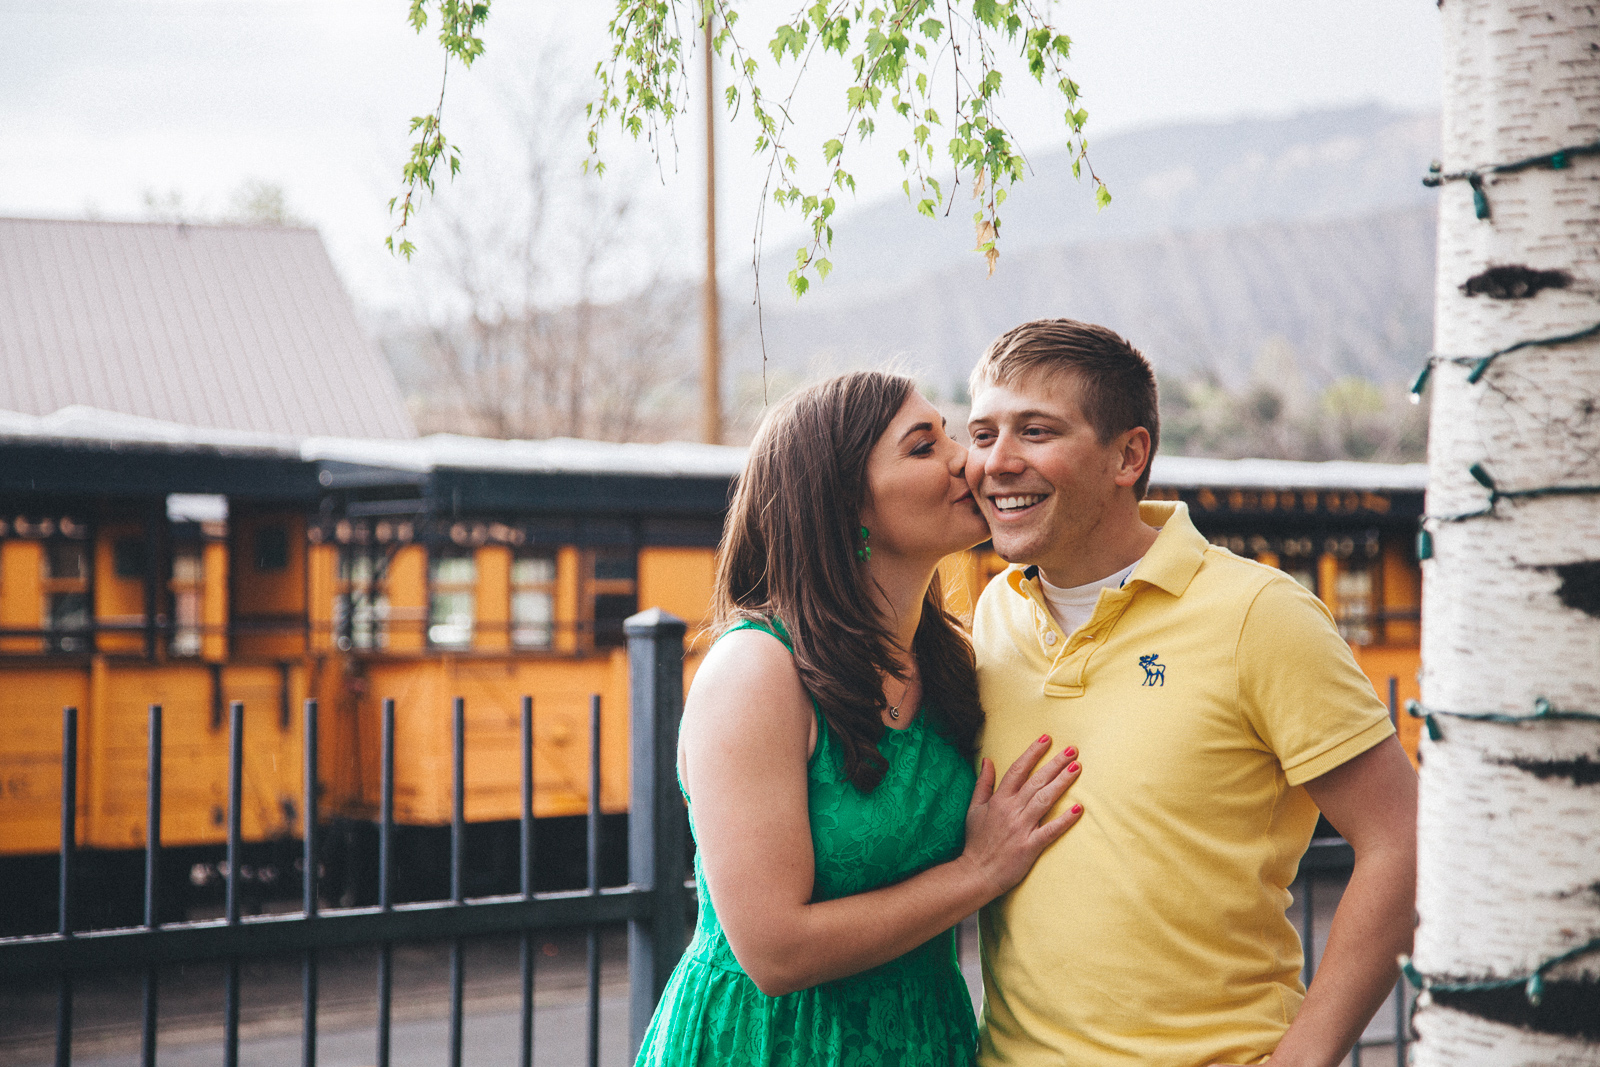 059-engagement-trees-fun-wedding-train-laughing-durango-colorado-farmington-candid-new-mexico